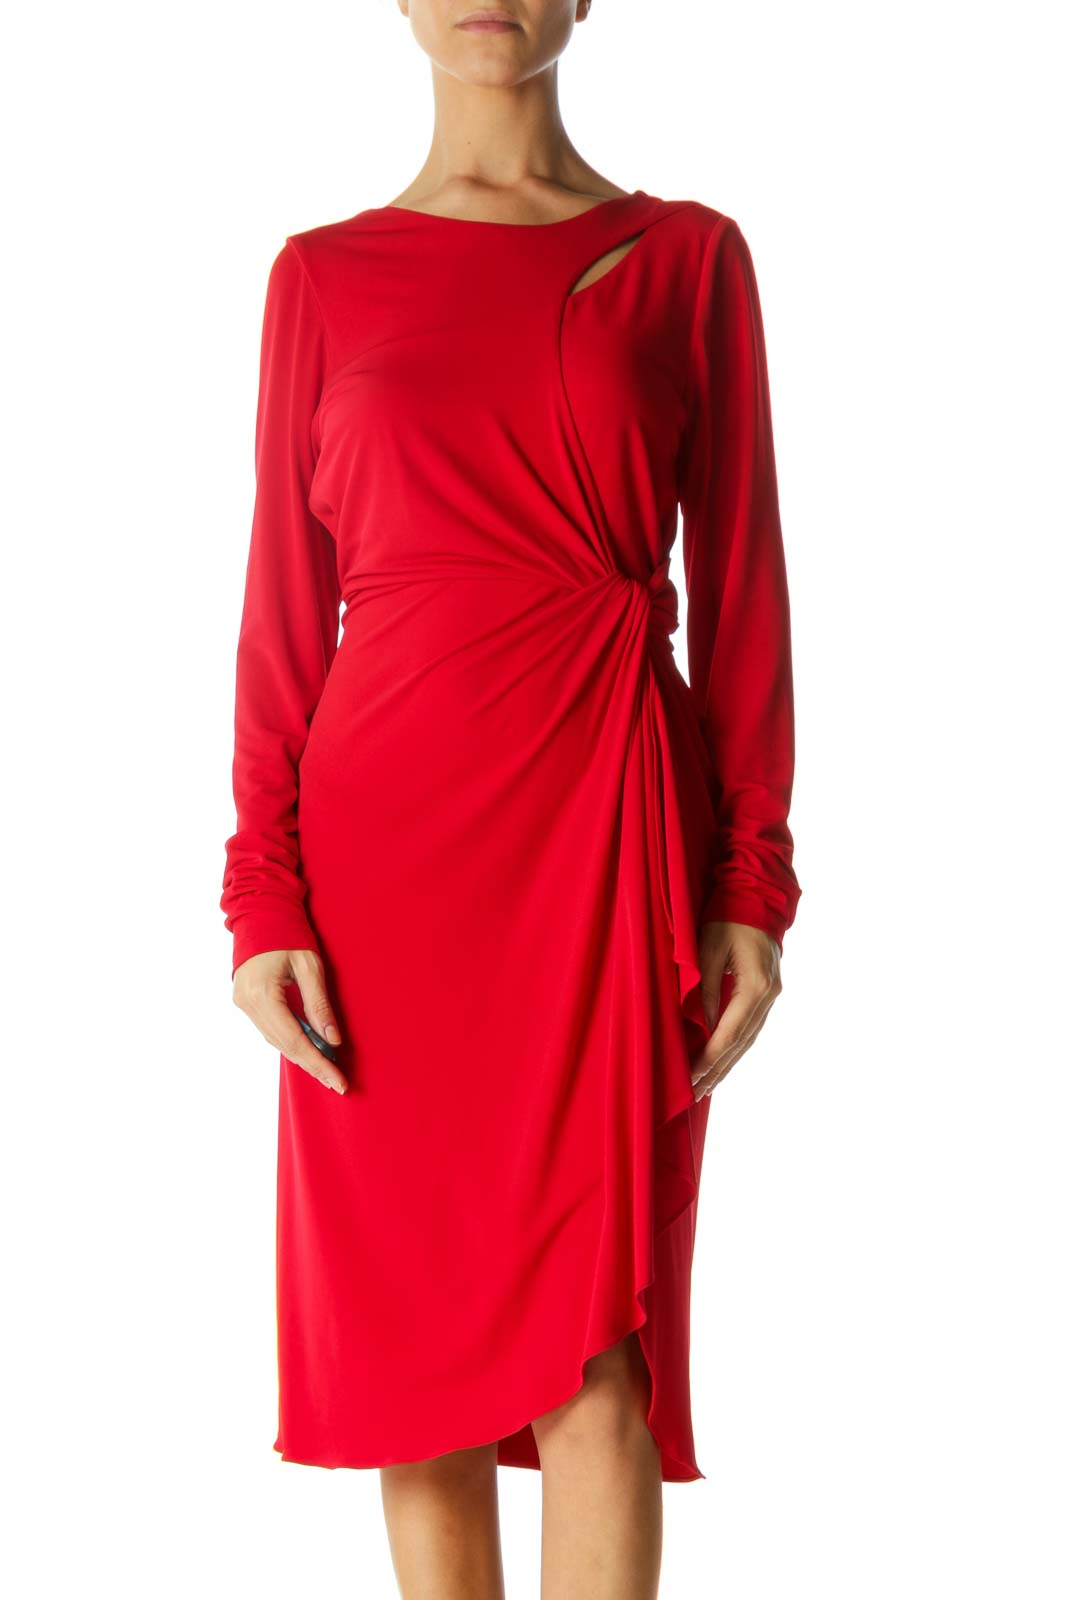 Red Round Neck Cut-Out Upper and Knot Detail Dress Front